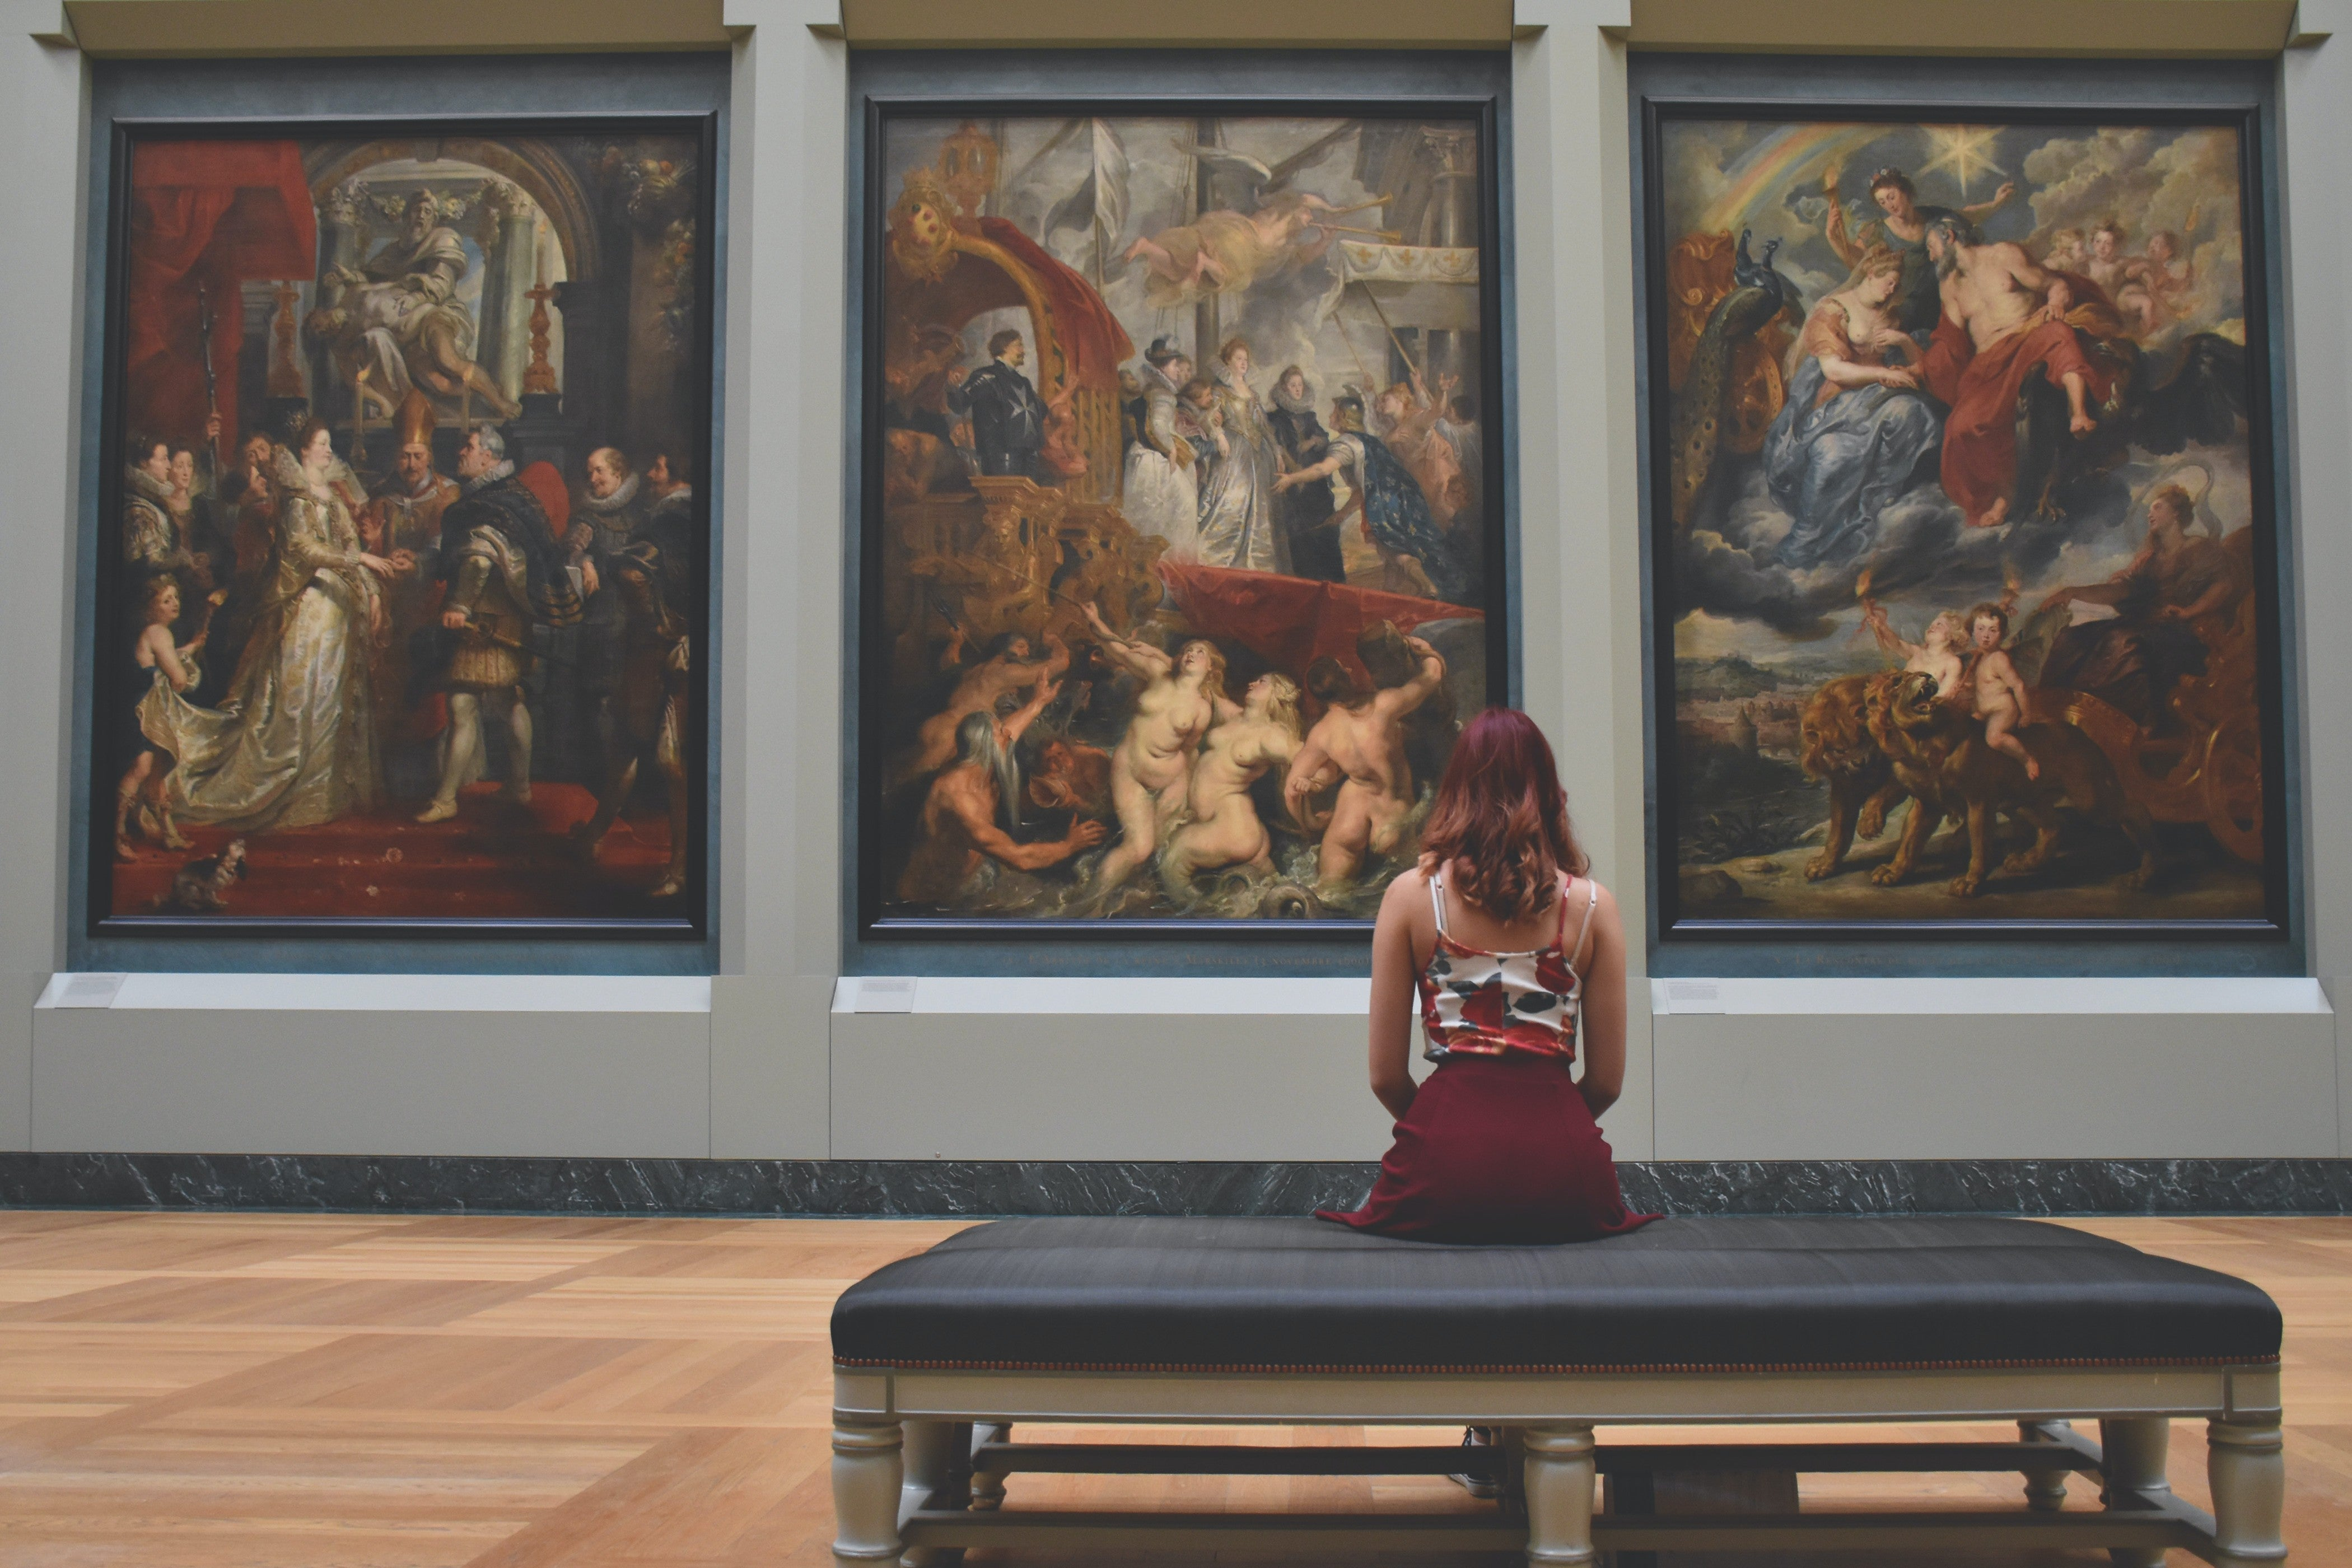 A history of art student at an art gallery.